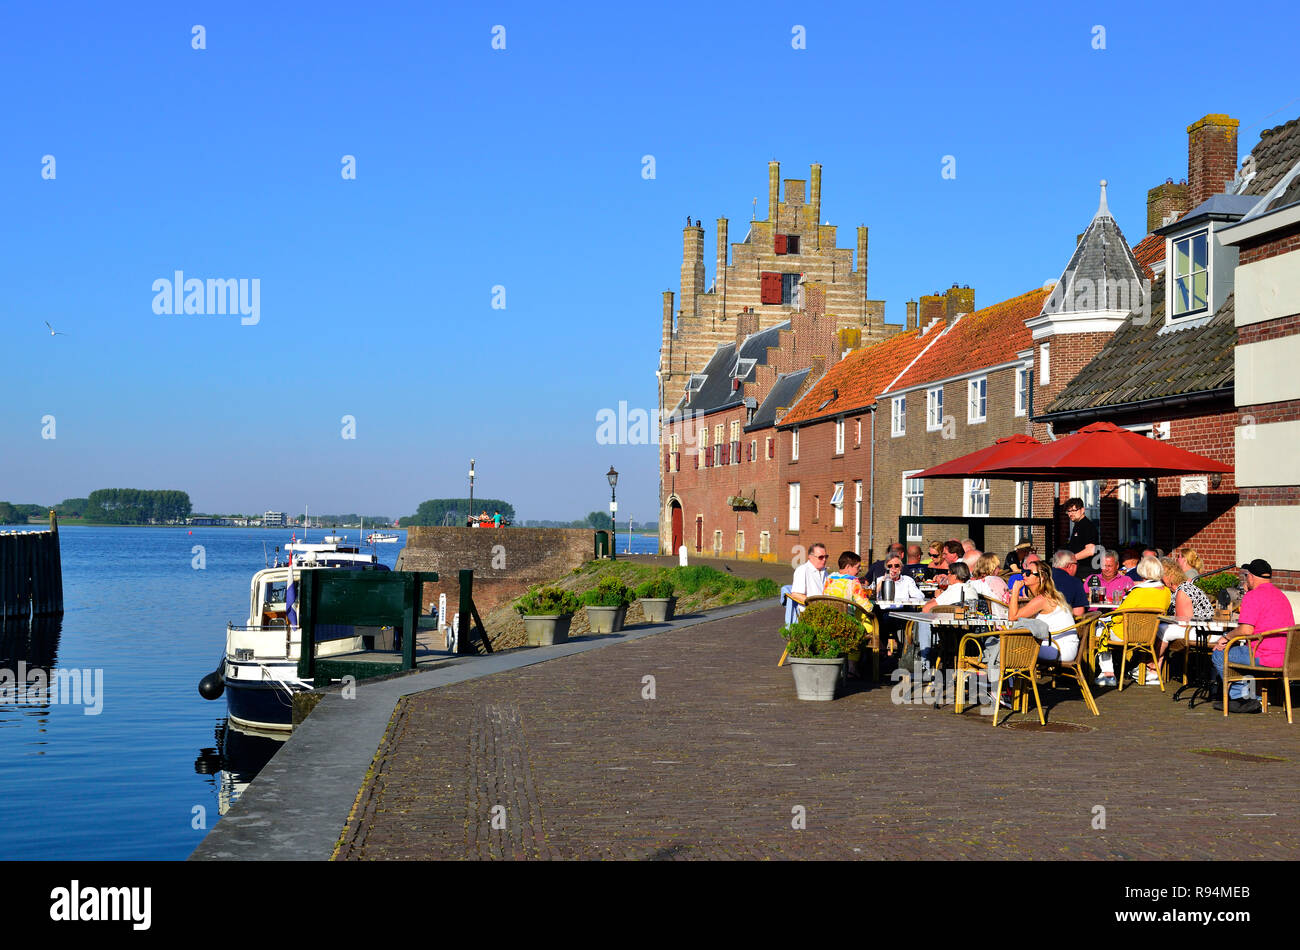 Eating alfresco in the picture postcard village of Veere a tourist town on the Veerse Meer Lake in the province of Zeeland, Holland, Netherlands Stock Photo